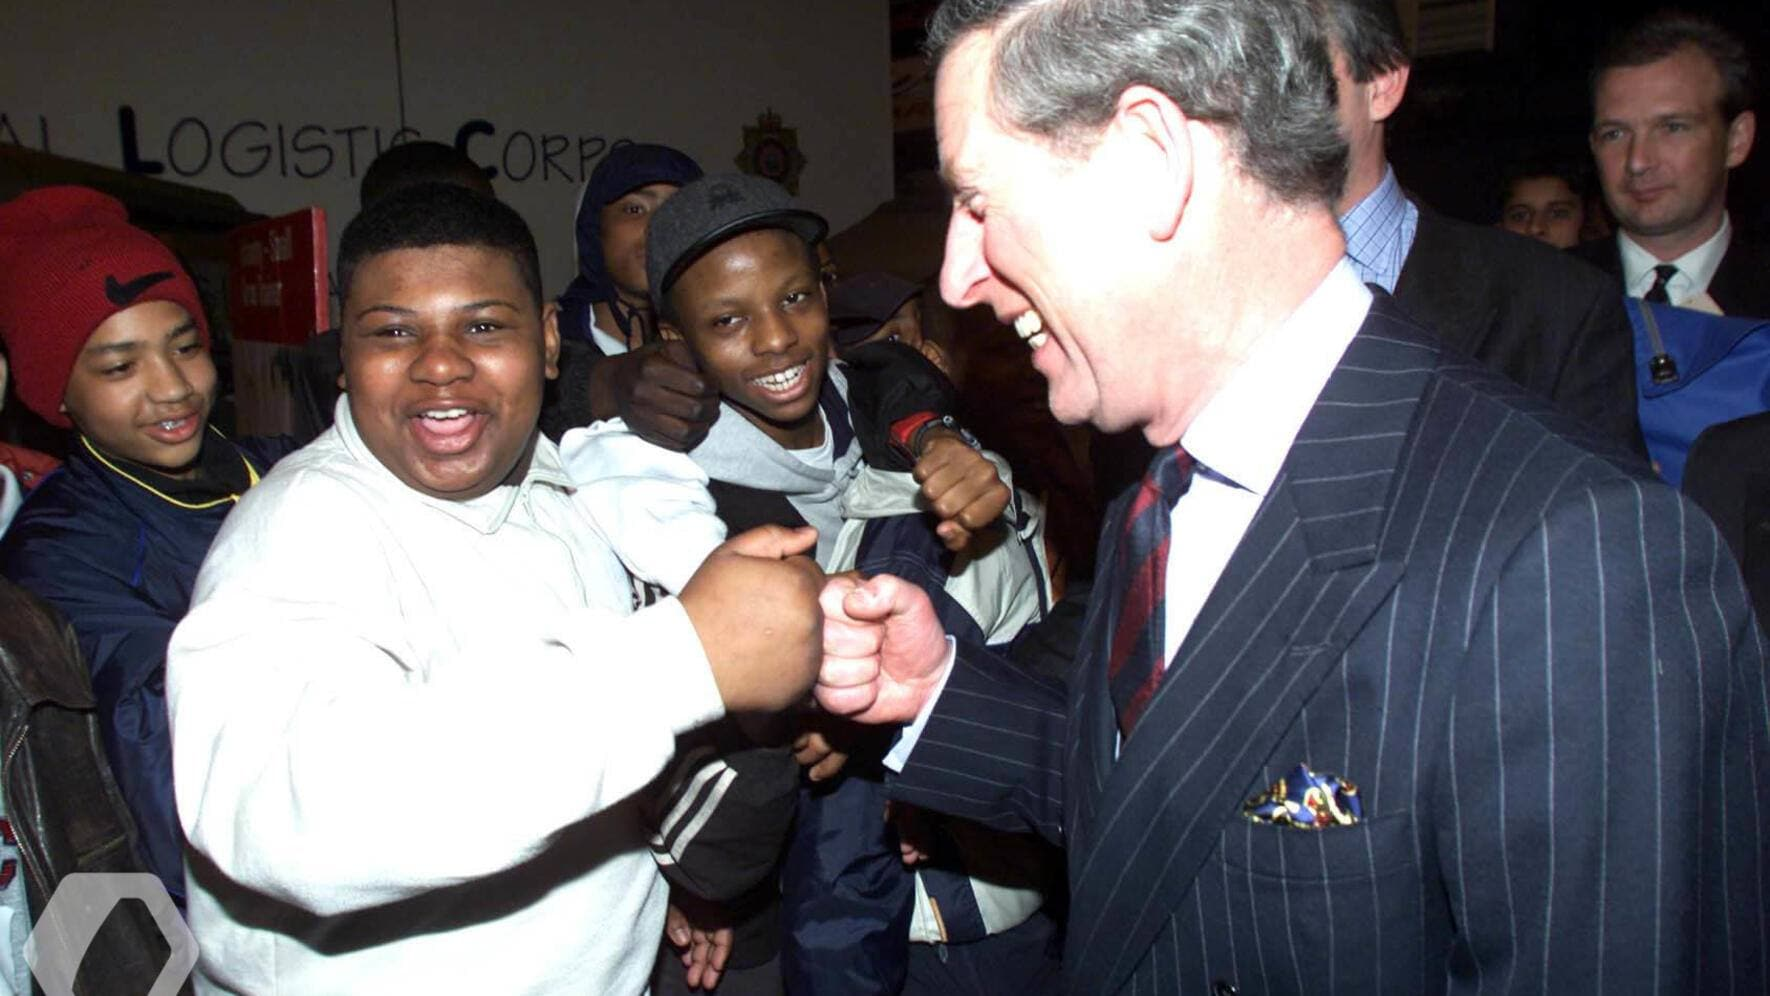 Prince of Wales greets Tyrone Lyndo,14, from Brixton Southeast London at the Army Ethnic Recruiting Fair held at Wembley Arena, London. The two-day show marks the conclusion of the first year of the Army's ethnic recruitment campaign. *..which has seen 400 recruitment events in 25 locations. (KEYSTONE/PRESS ASSOCIATION IMAGES/PA)